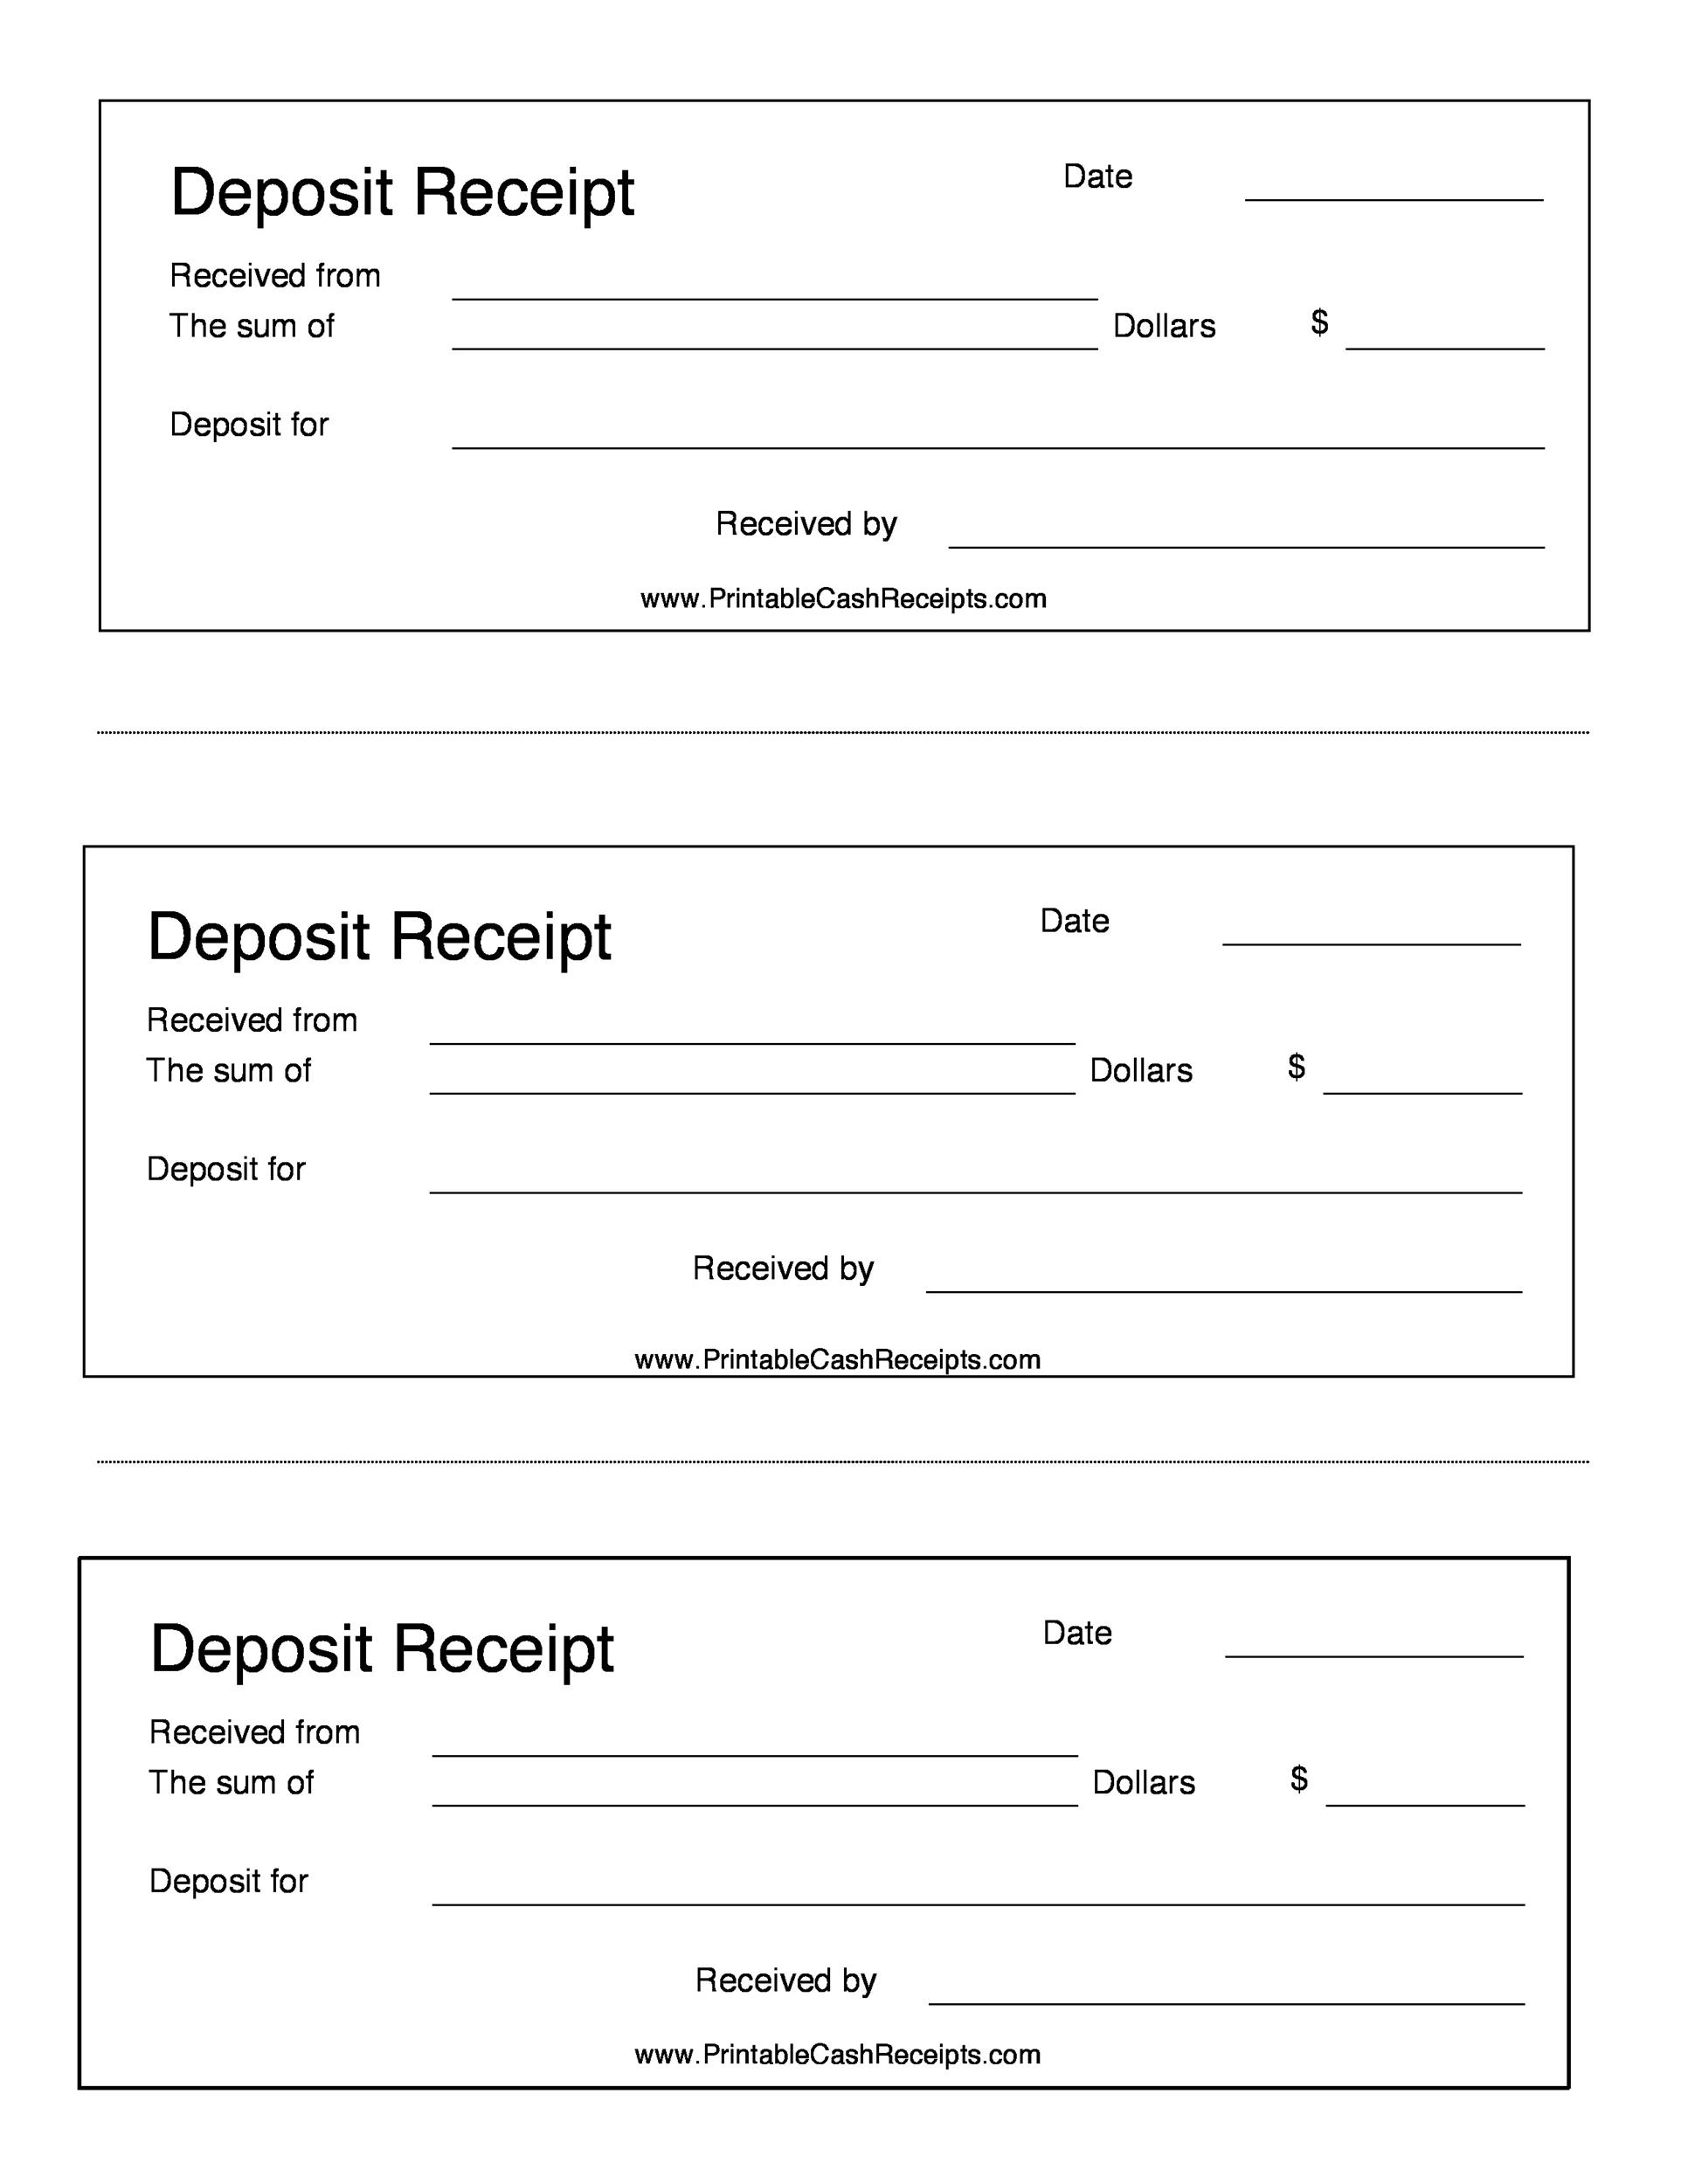 50 Free Receipt Templates Cash Sales Donation Taxi – Sample Deposit Receipt